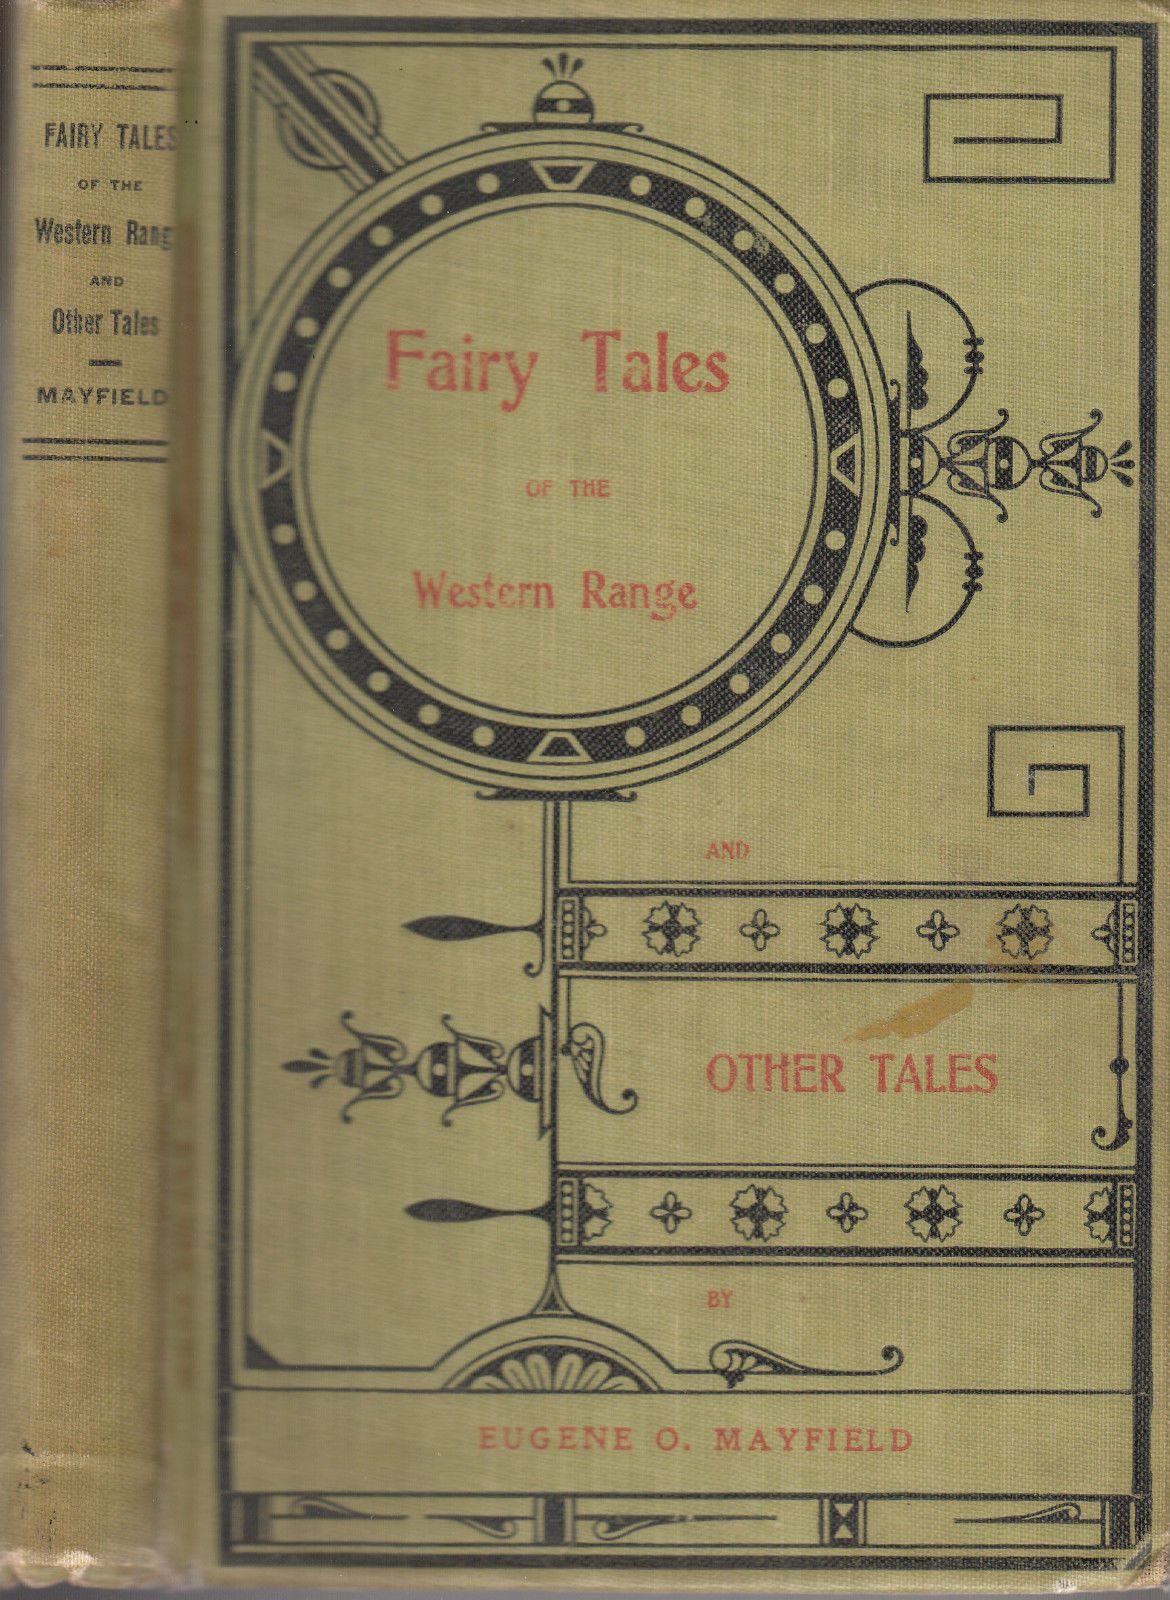 Fairy Tales of The Western Range Eugene O Mayfield 1902 Signed | eBay